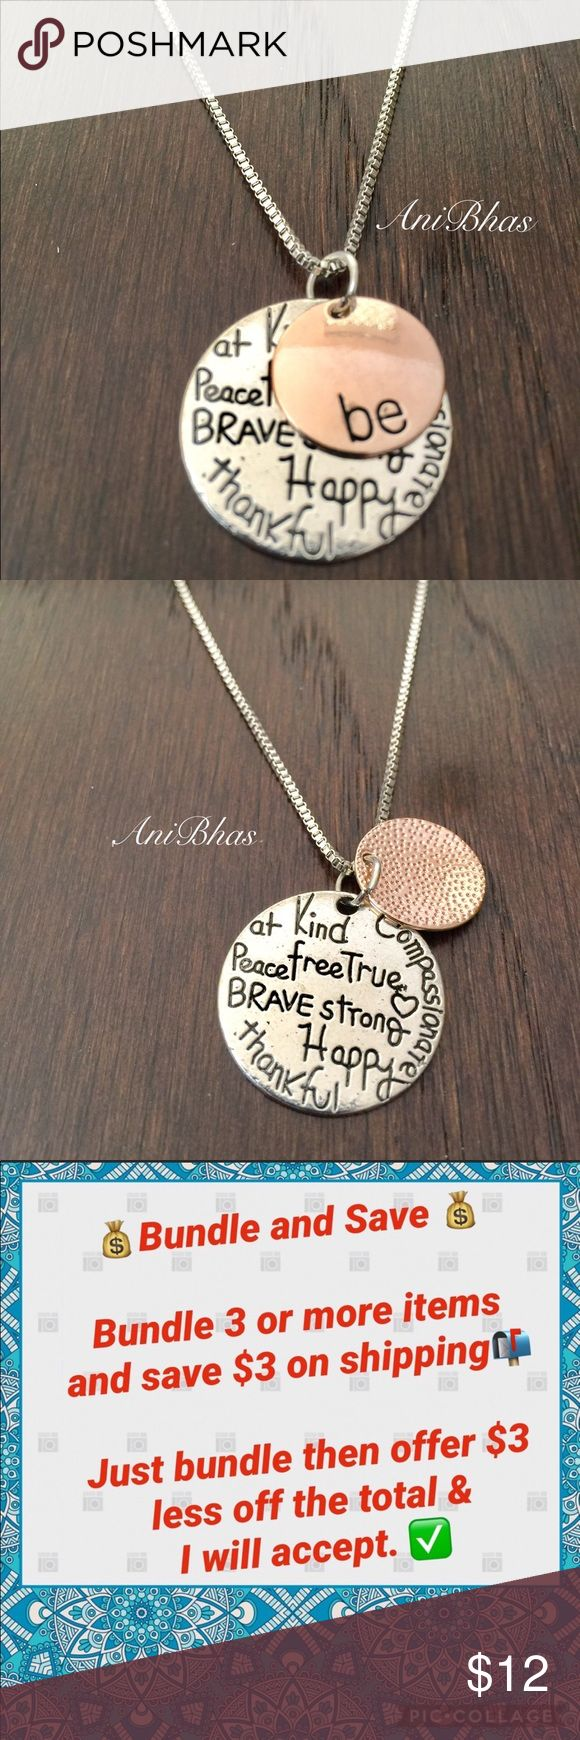 "Two-Tone ""Be"" Graffiti Initial Charm Necklace Two-Tone ""Be"" Graffiti Initial Charm Necklace Silver Tone Rose Gold Tone Pendant Inspirational Necklace ... Be Kind Jewelry Necklaces"